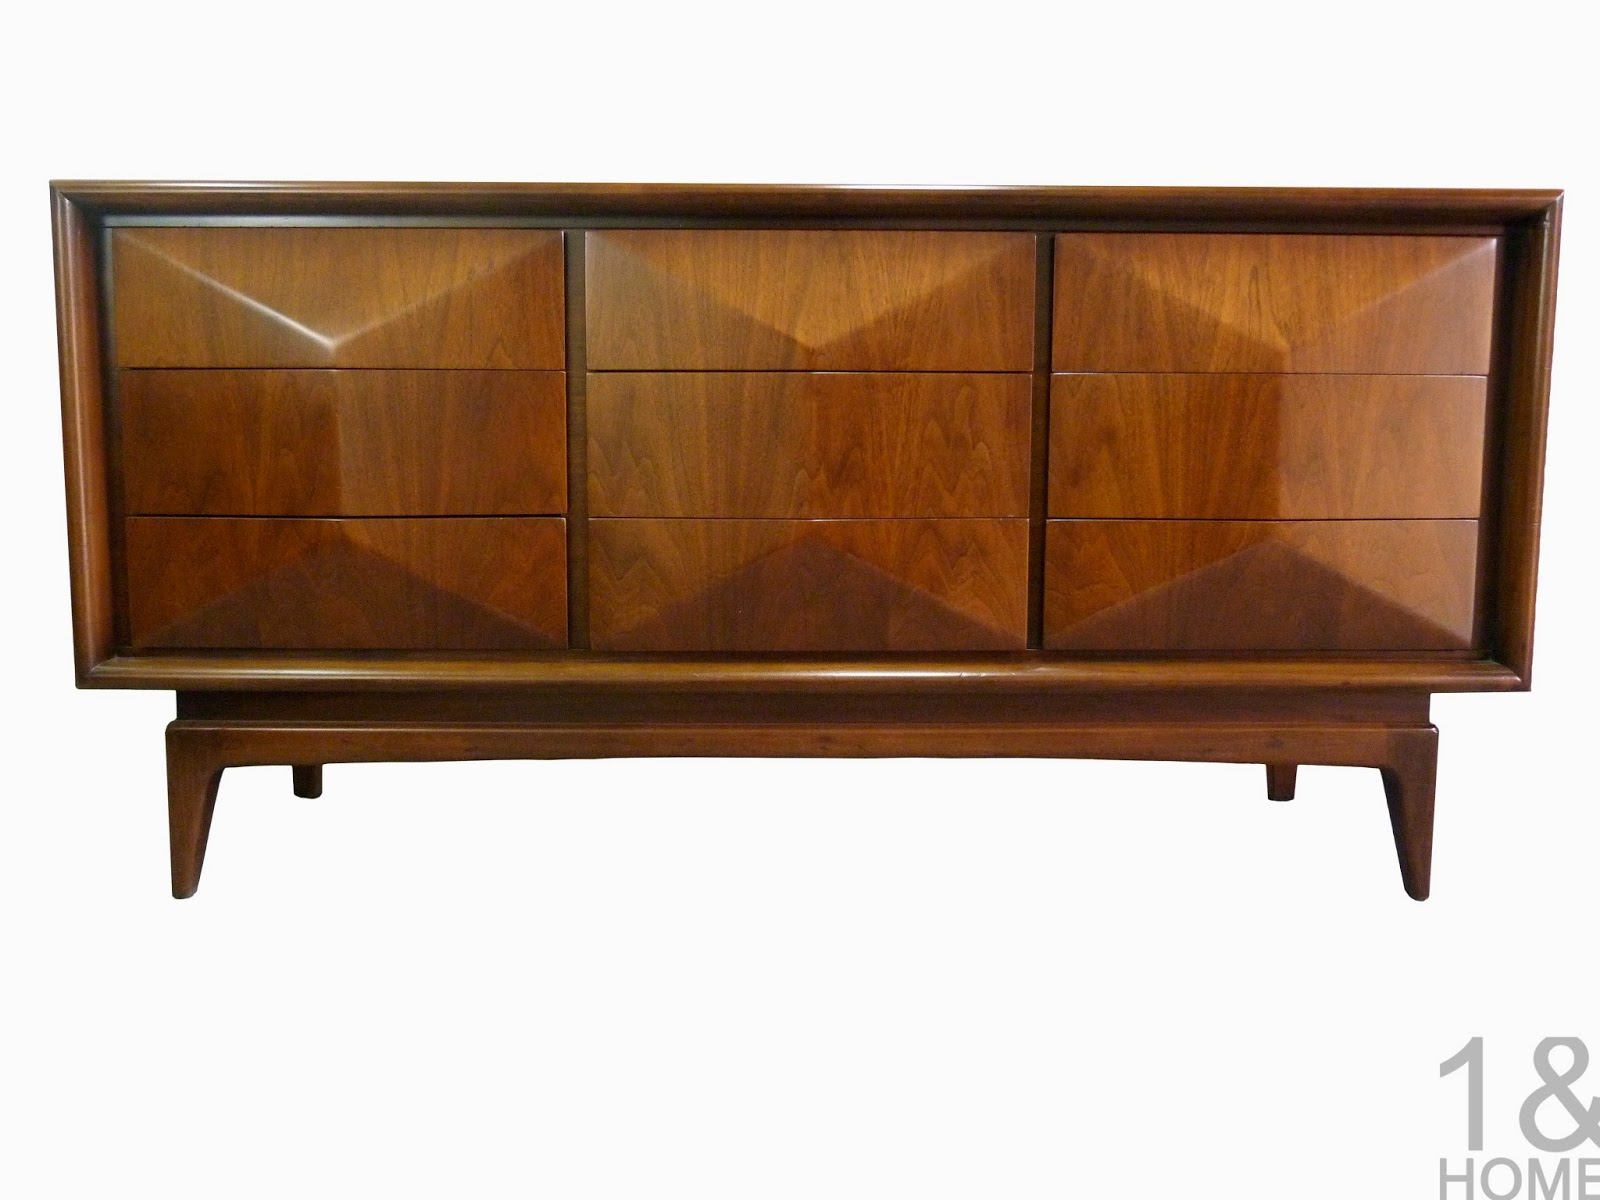 Diamond Front Mid-Century Modern Dresser / Credenza by United Furniture